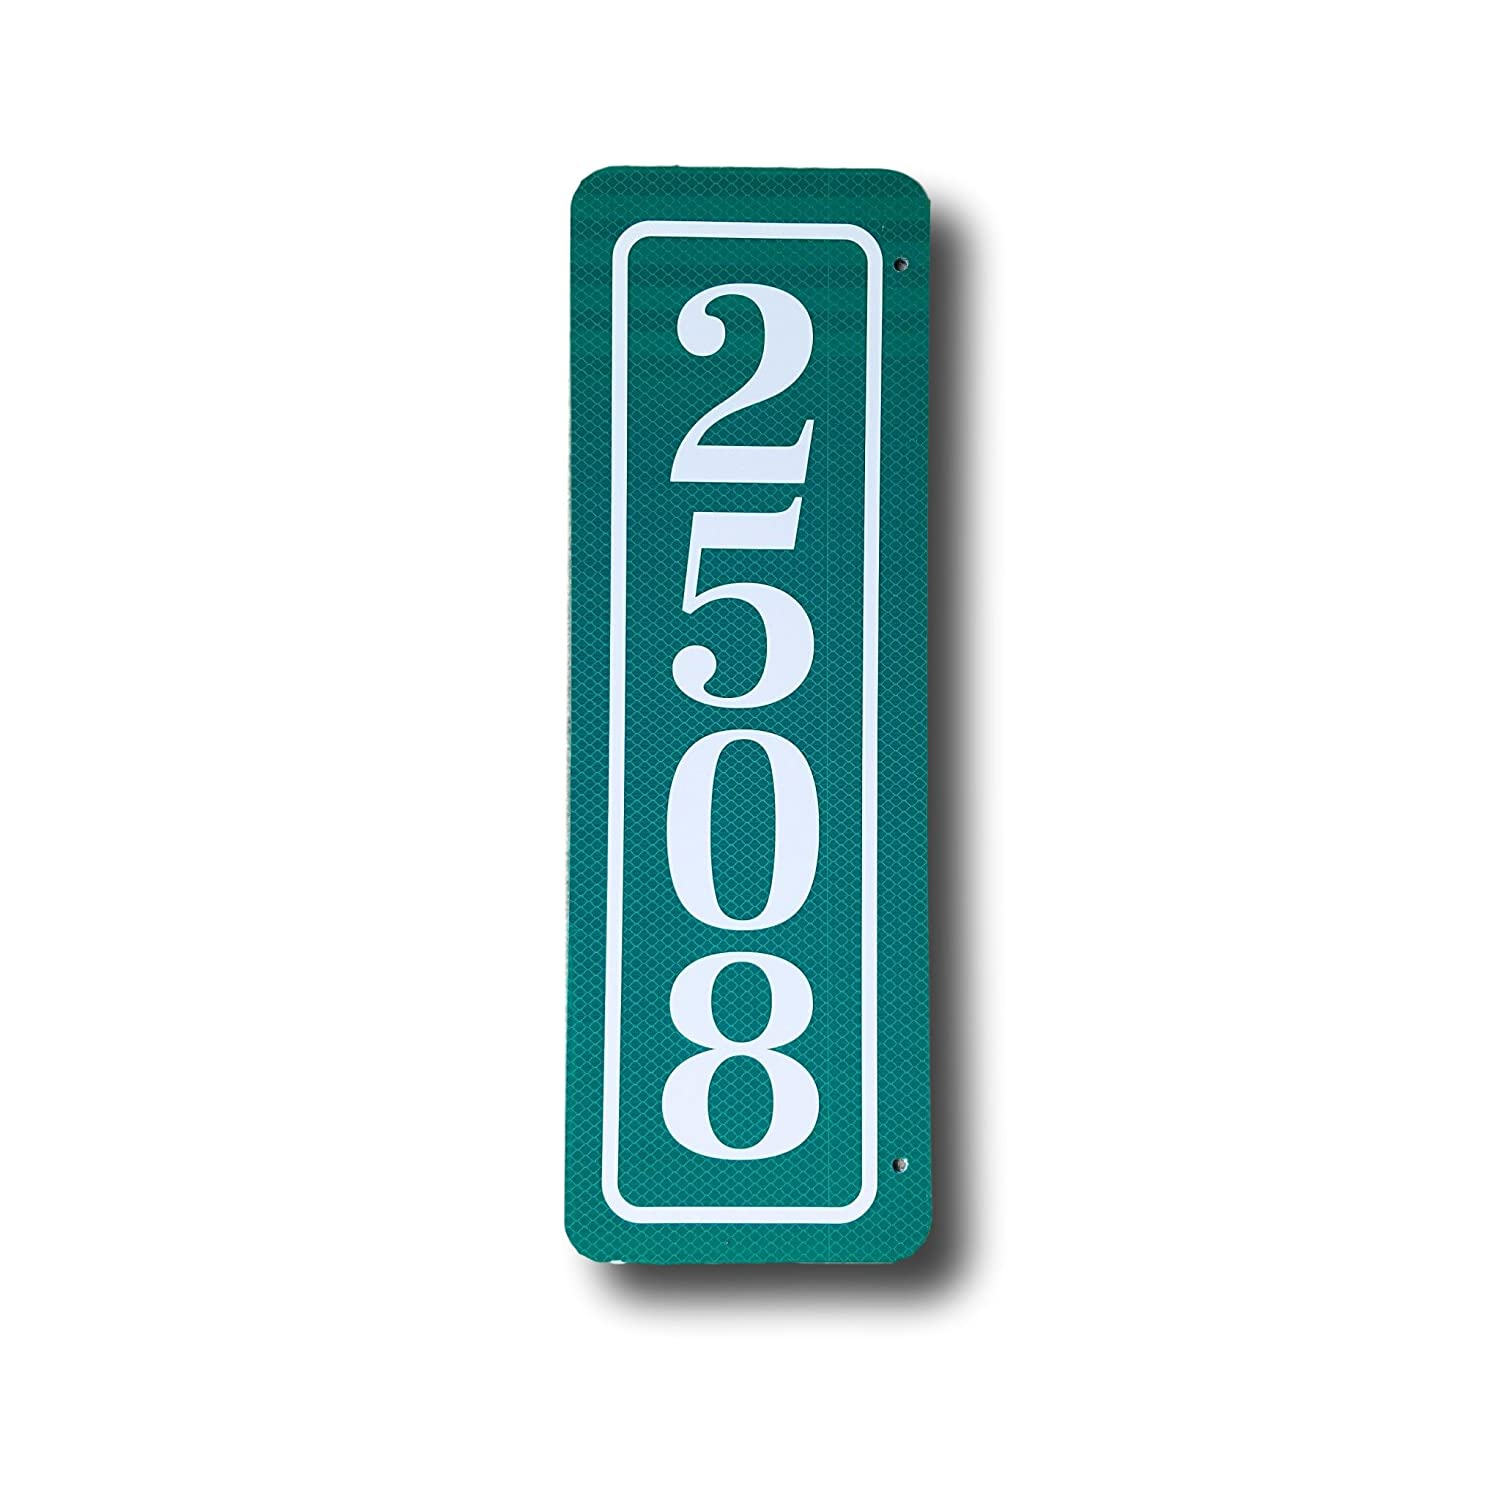 Stonebrae & Strath Reflective Address Sign (18x6 Classic Style Double Sided, Green w/White)